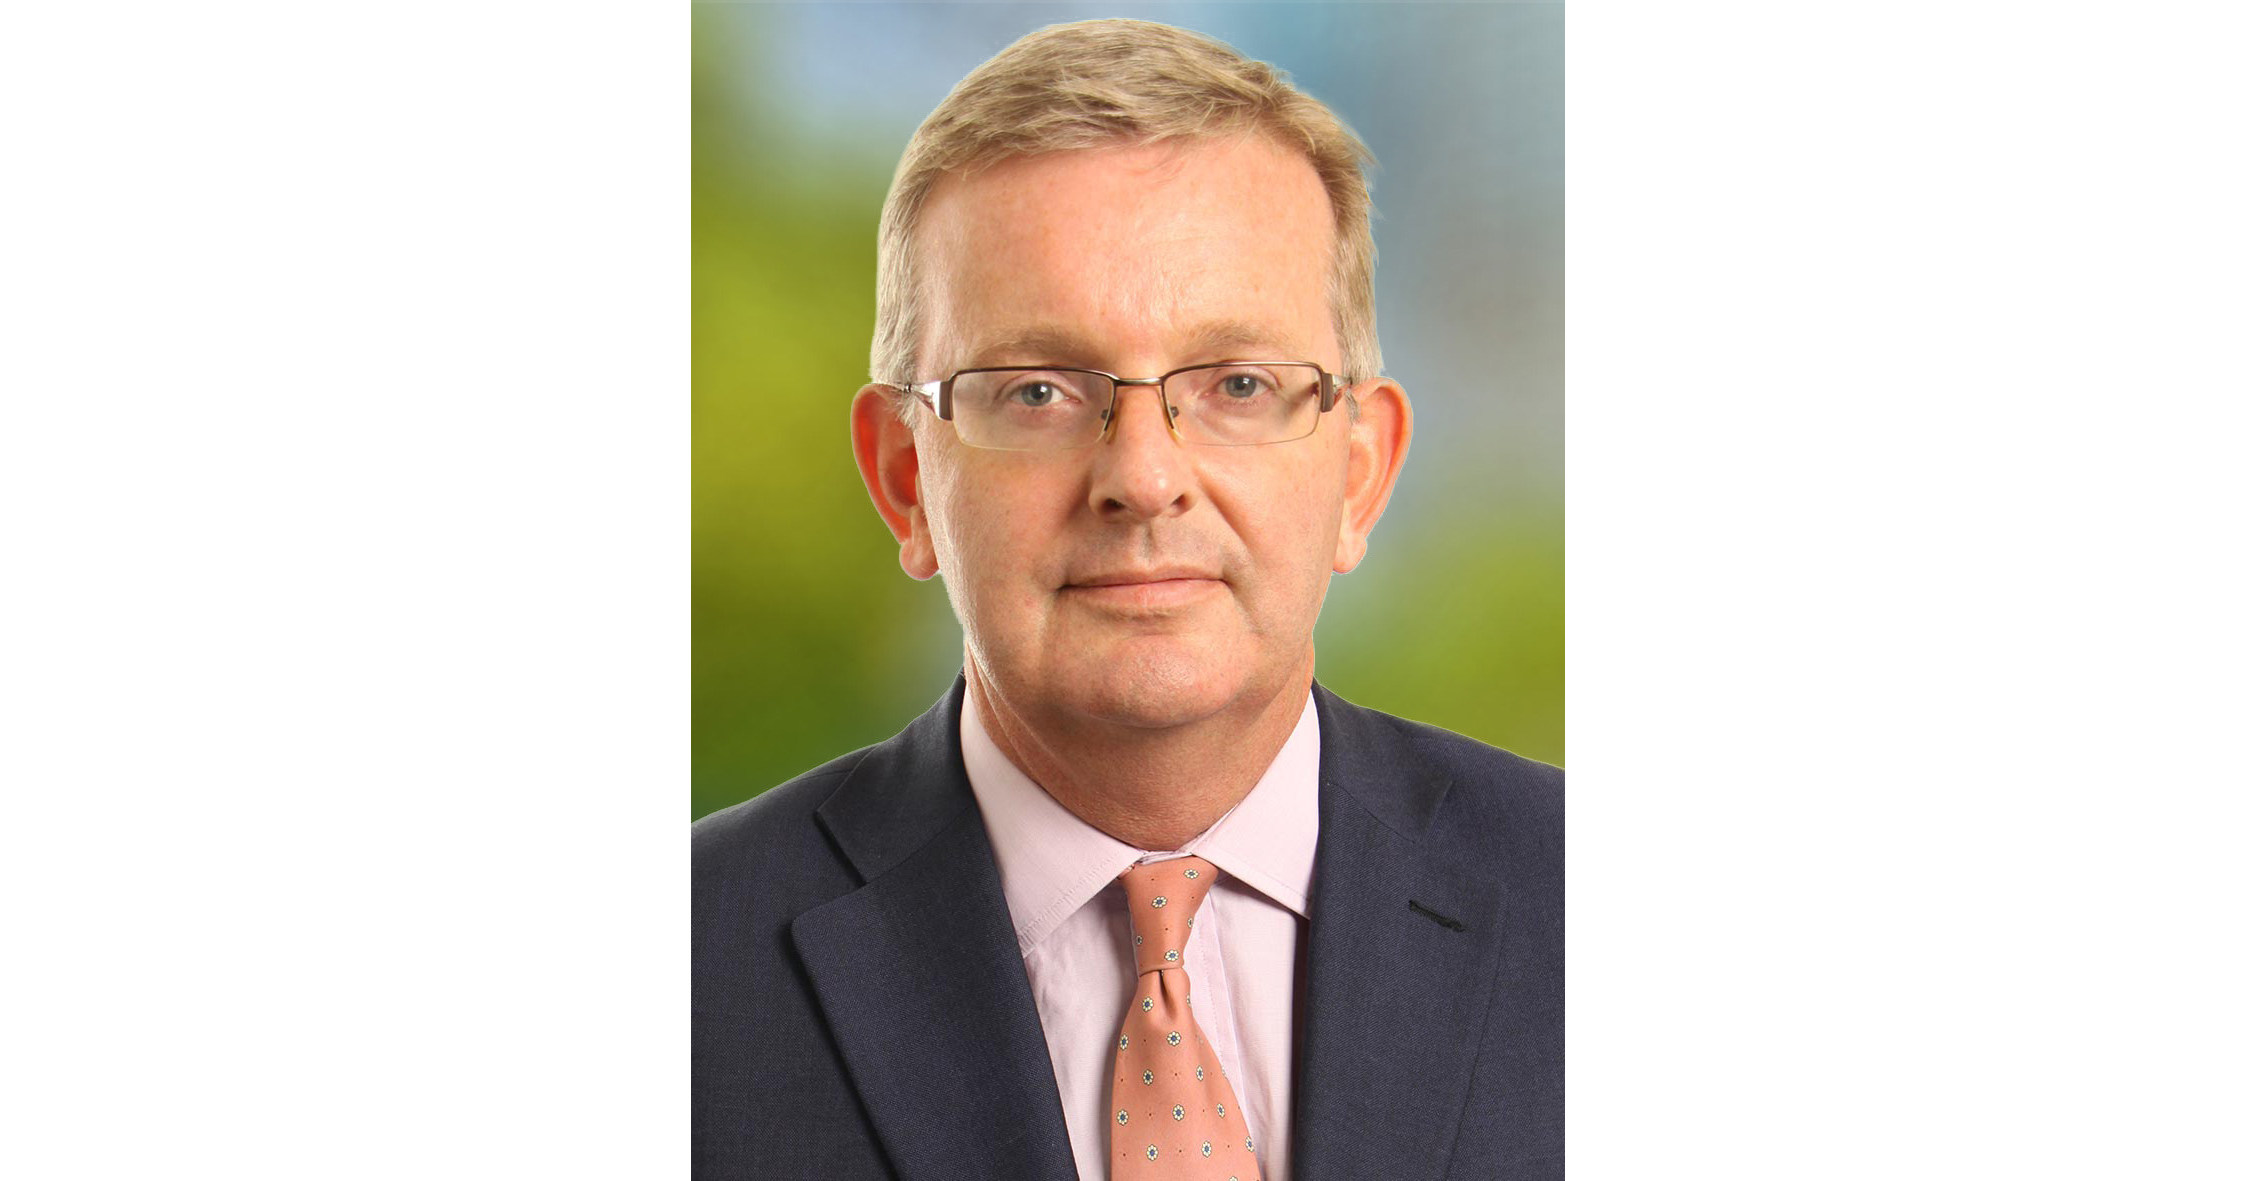 Baker McKenzie Appoints Global Head of Financial Institutions